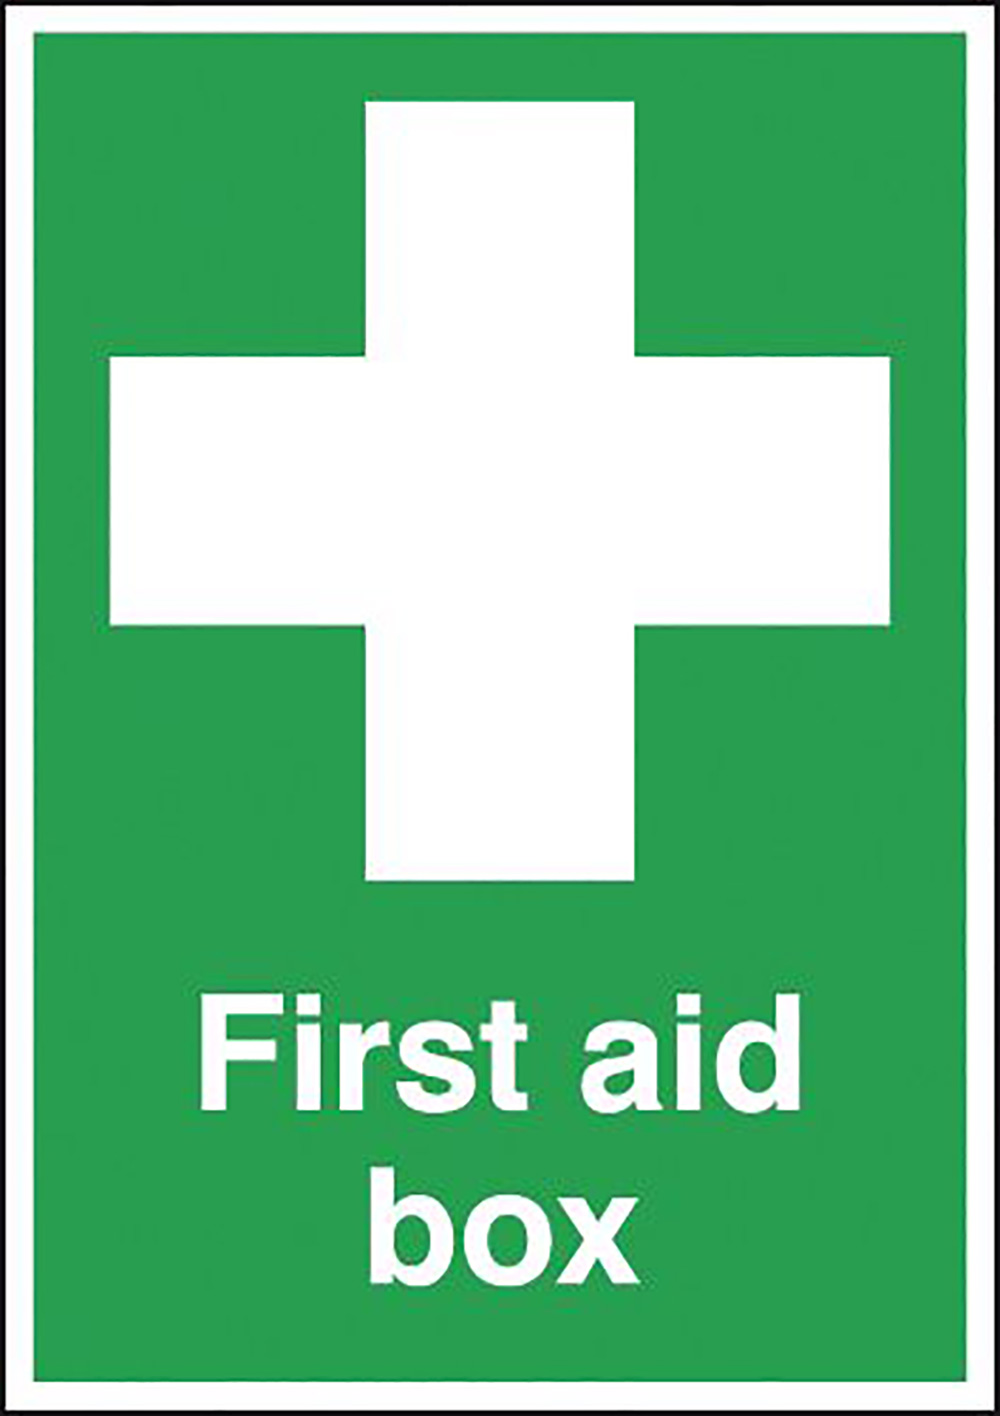 First Aid Box  70x50mm Self Adhesive Vinyl Safety Sign